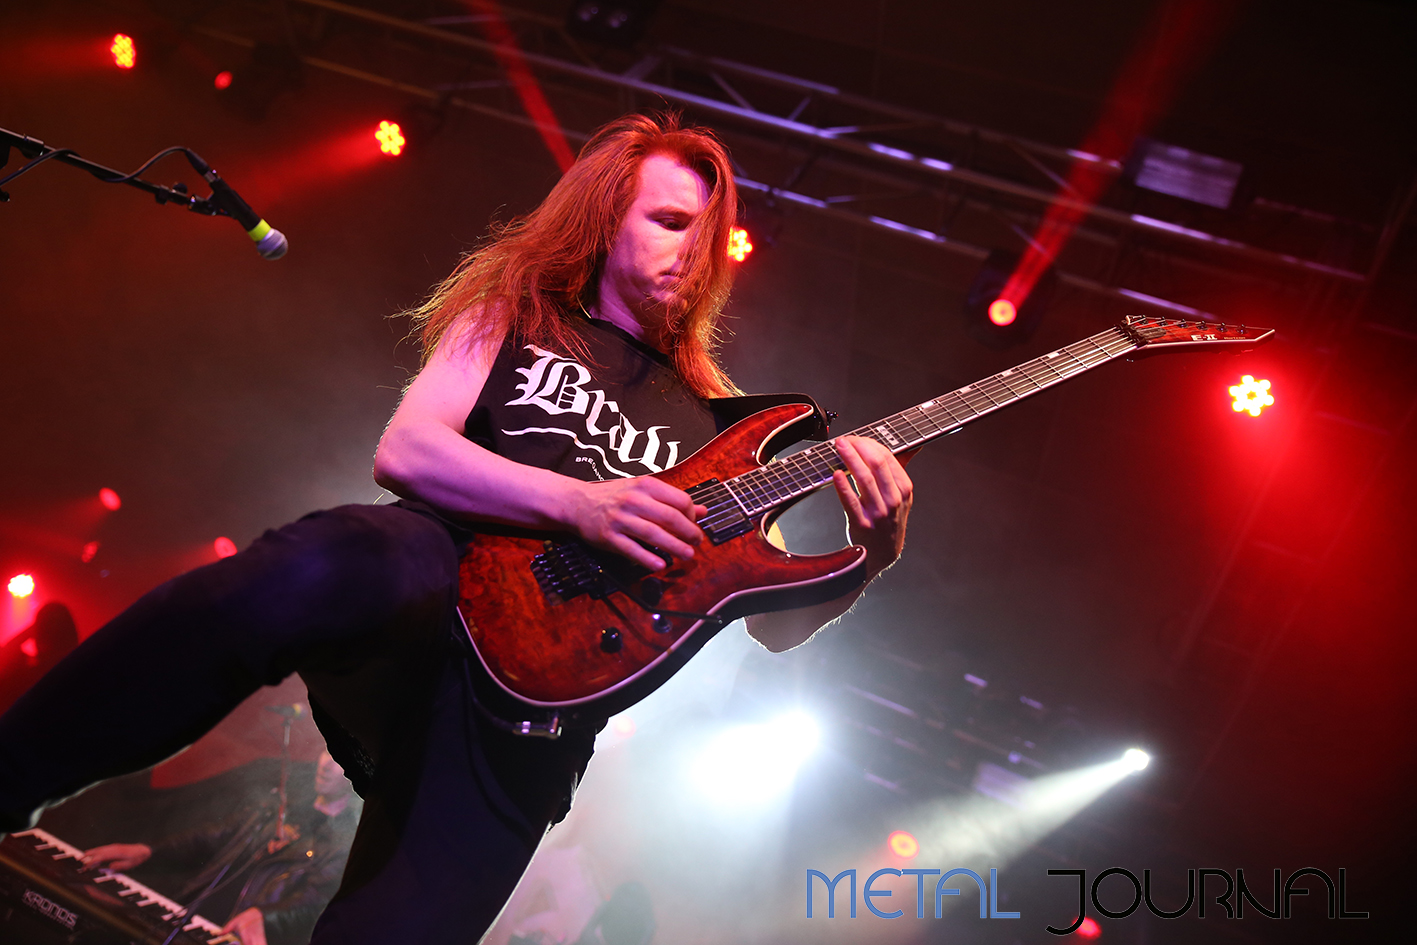 arion metal journal bilbao 2019 pic 2